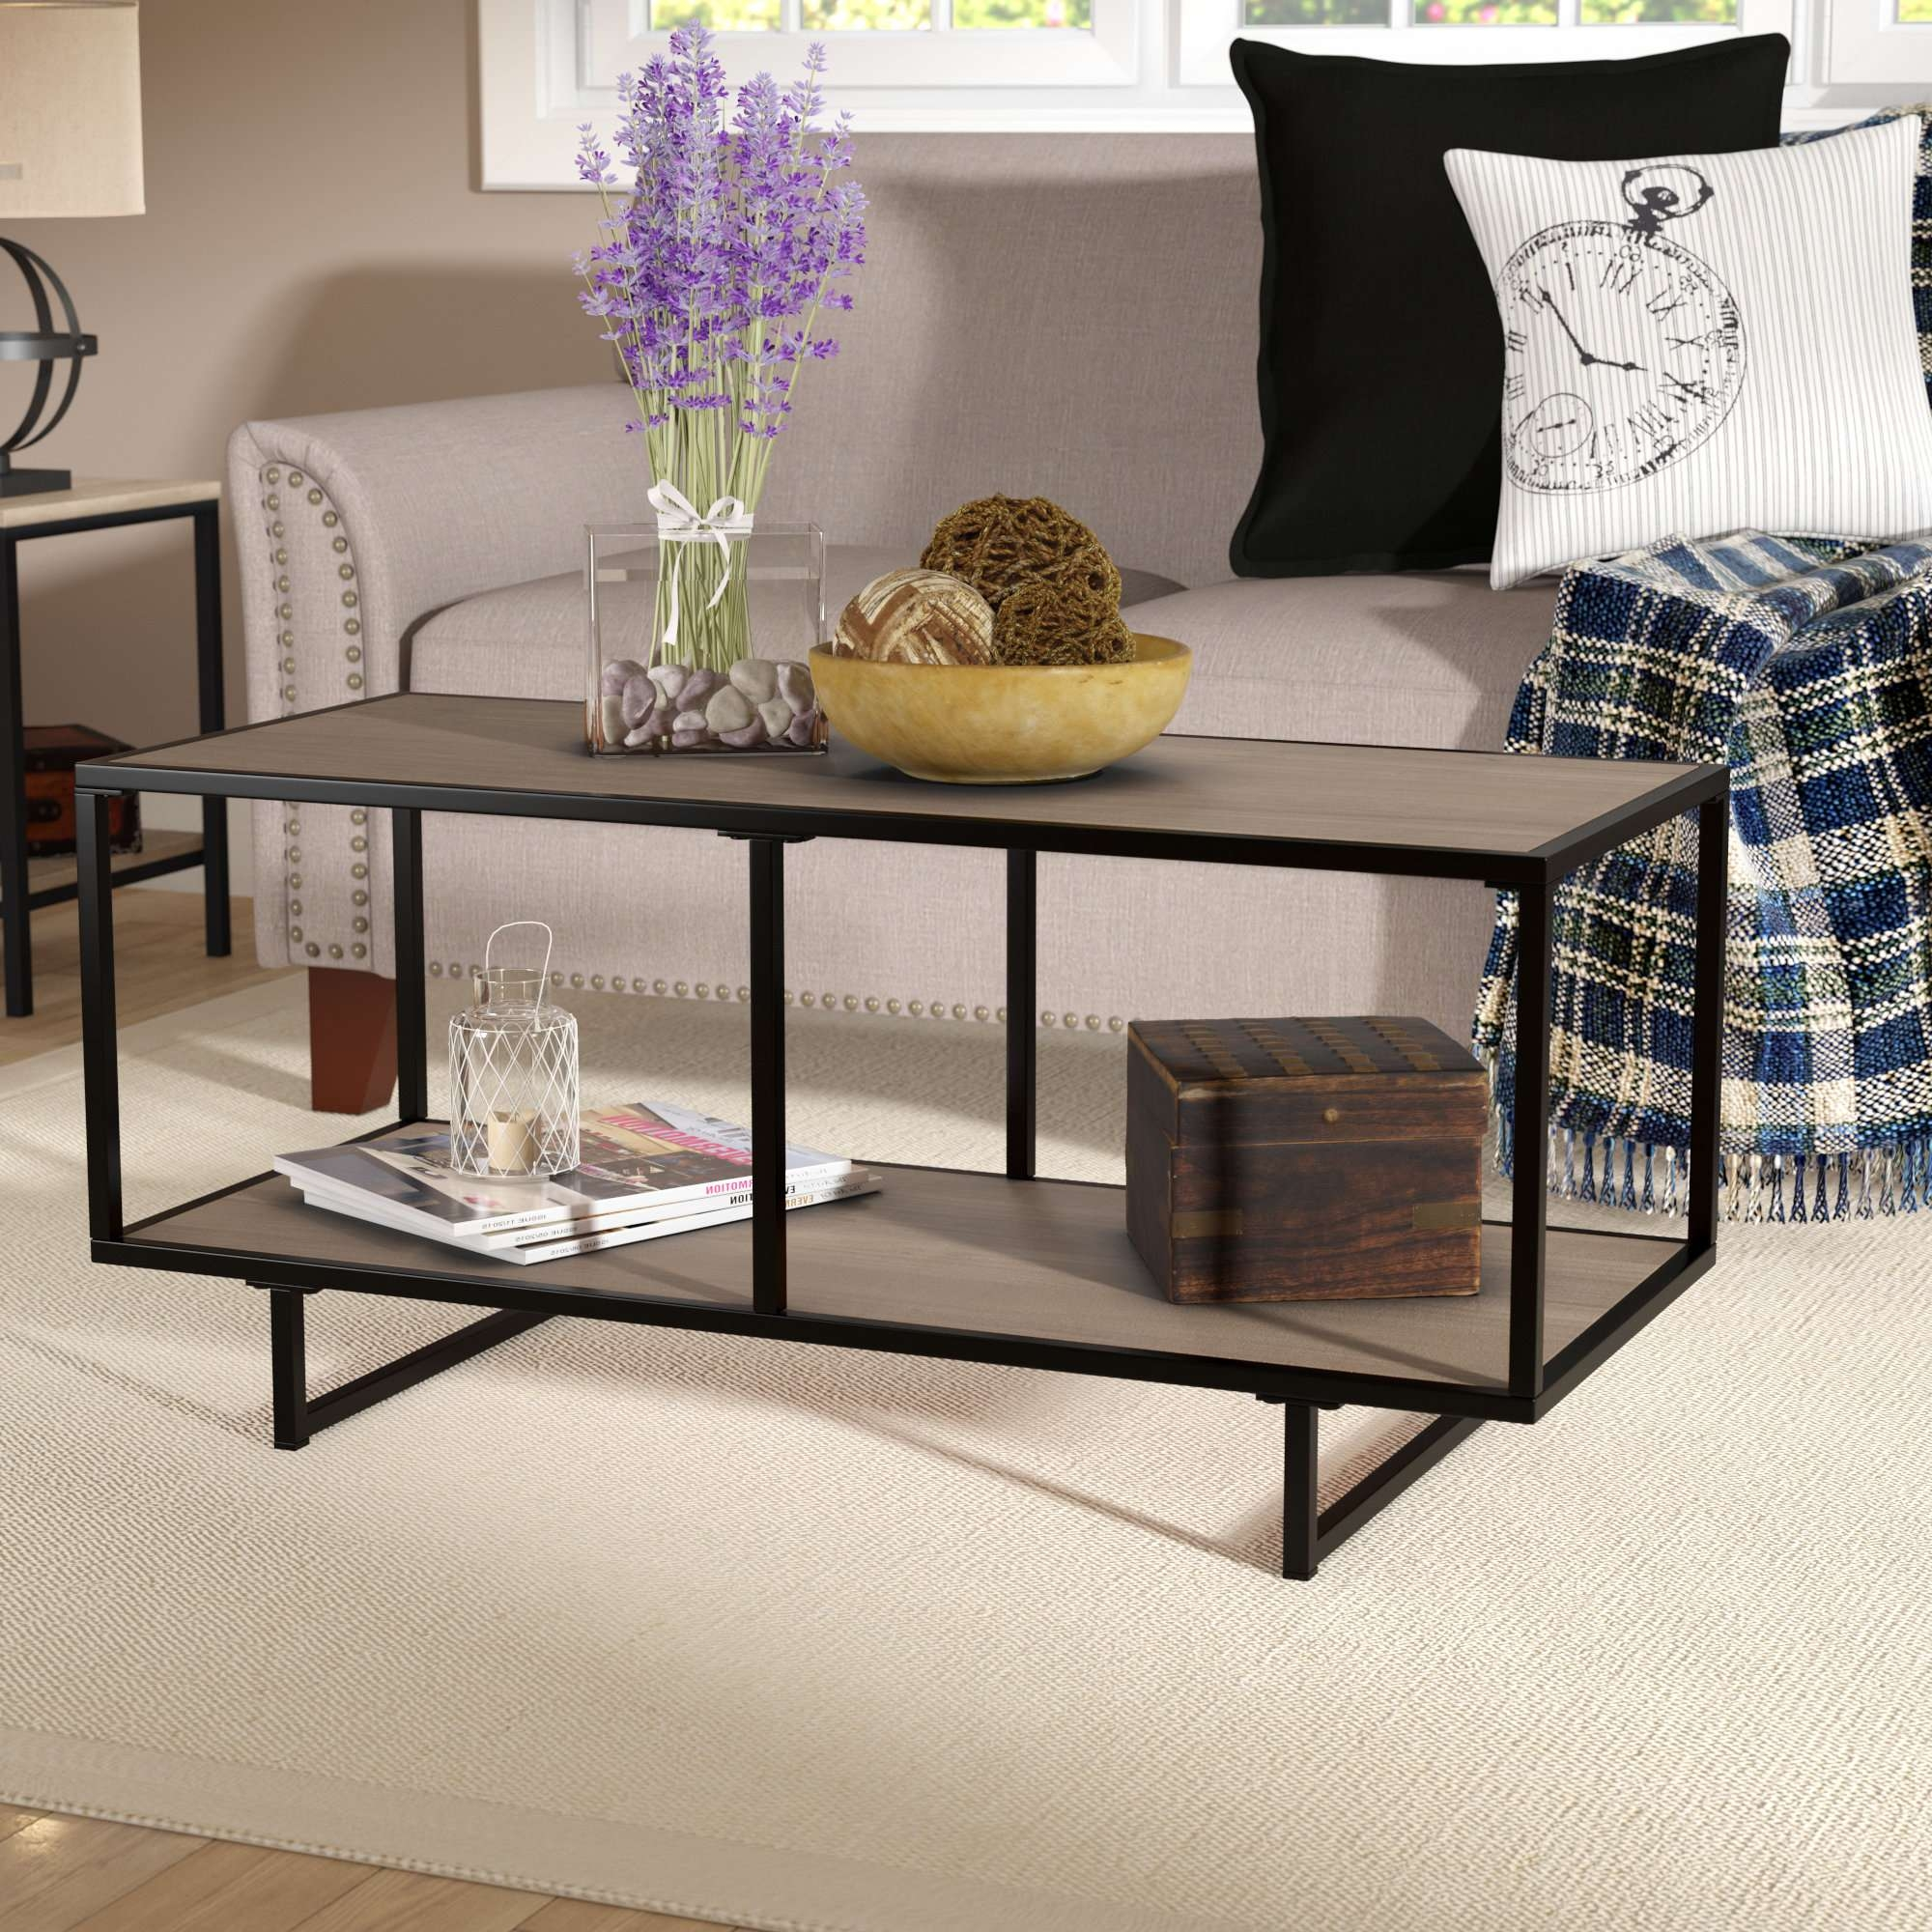 Trendy Coffee Tables With Shelves With Regard To Laurel Foundry Modern Farmhouse Zenaida Coffee Table & Reviews (View 9 of 20)